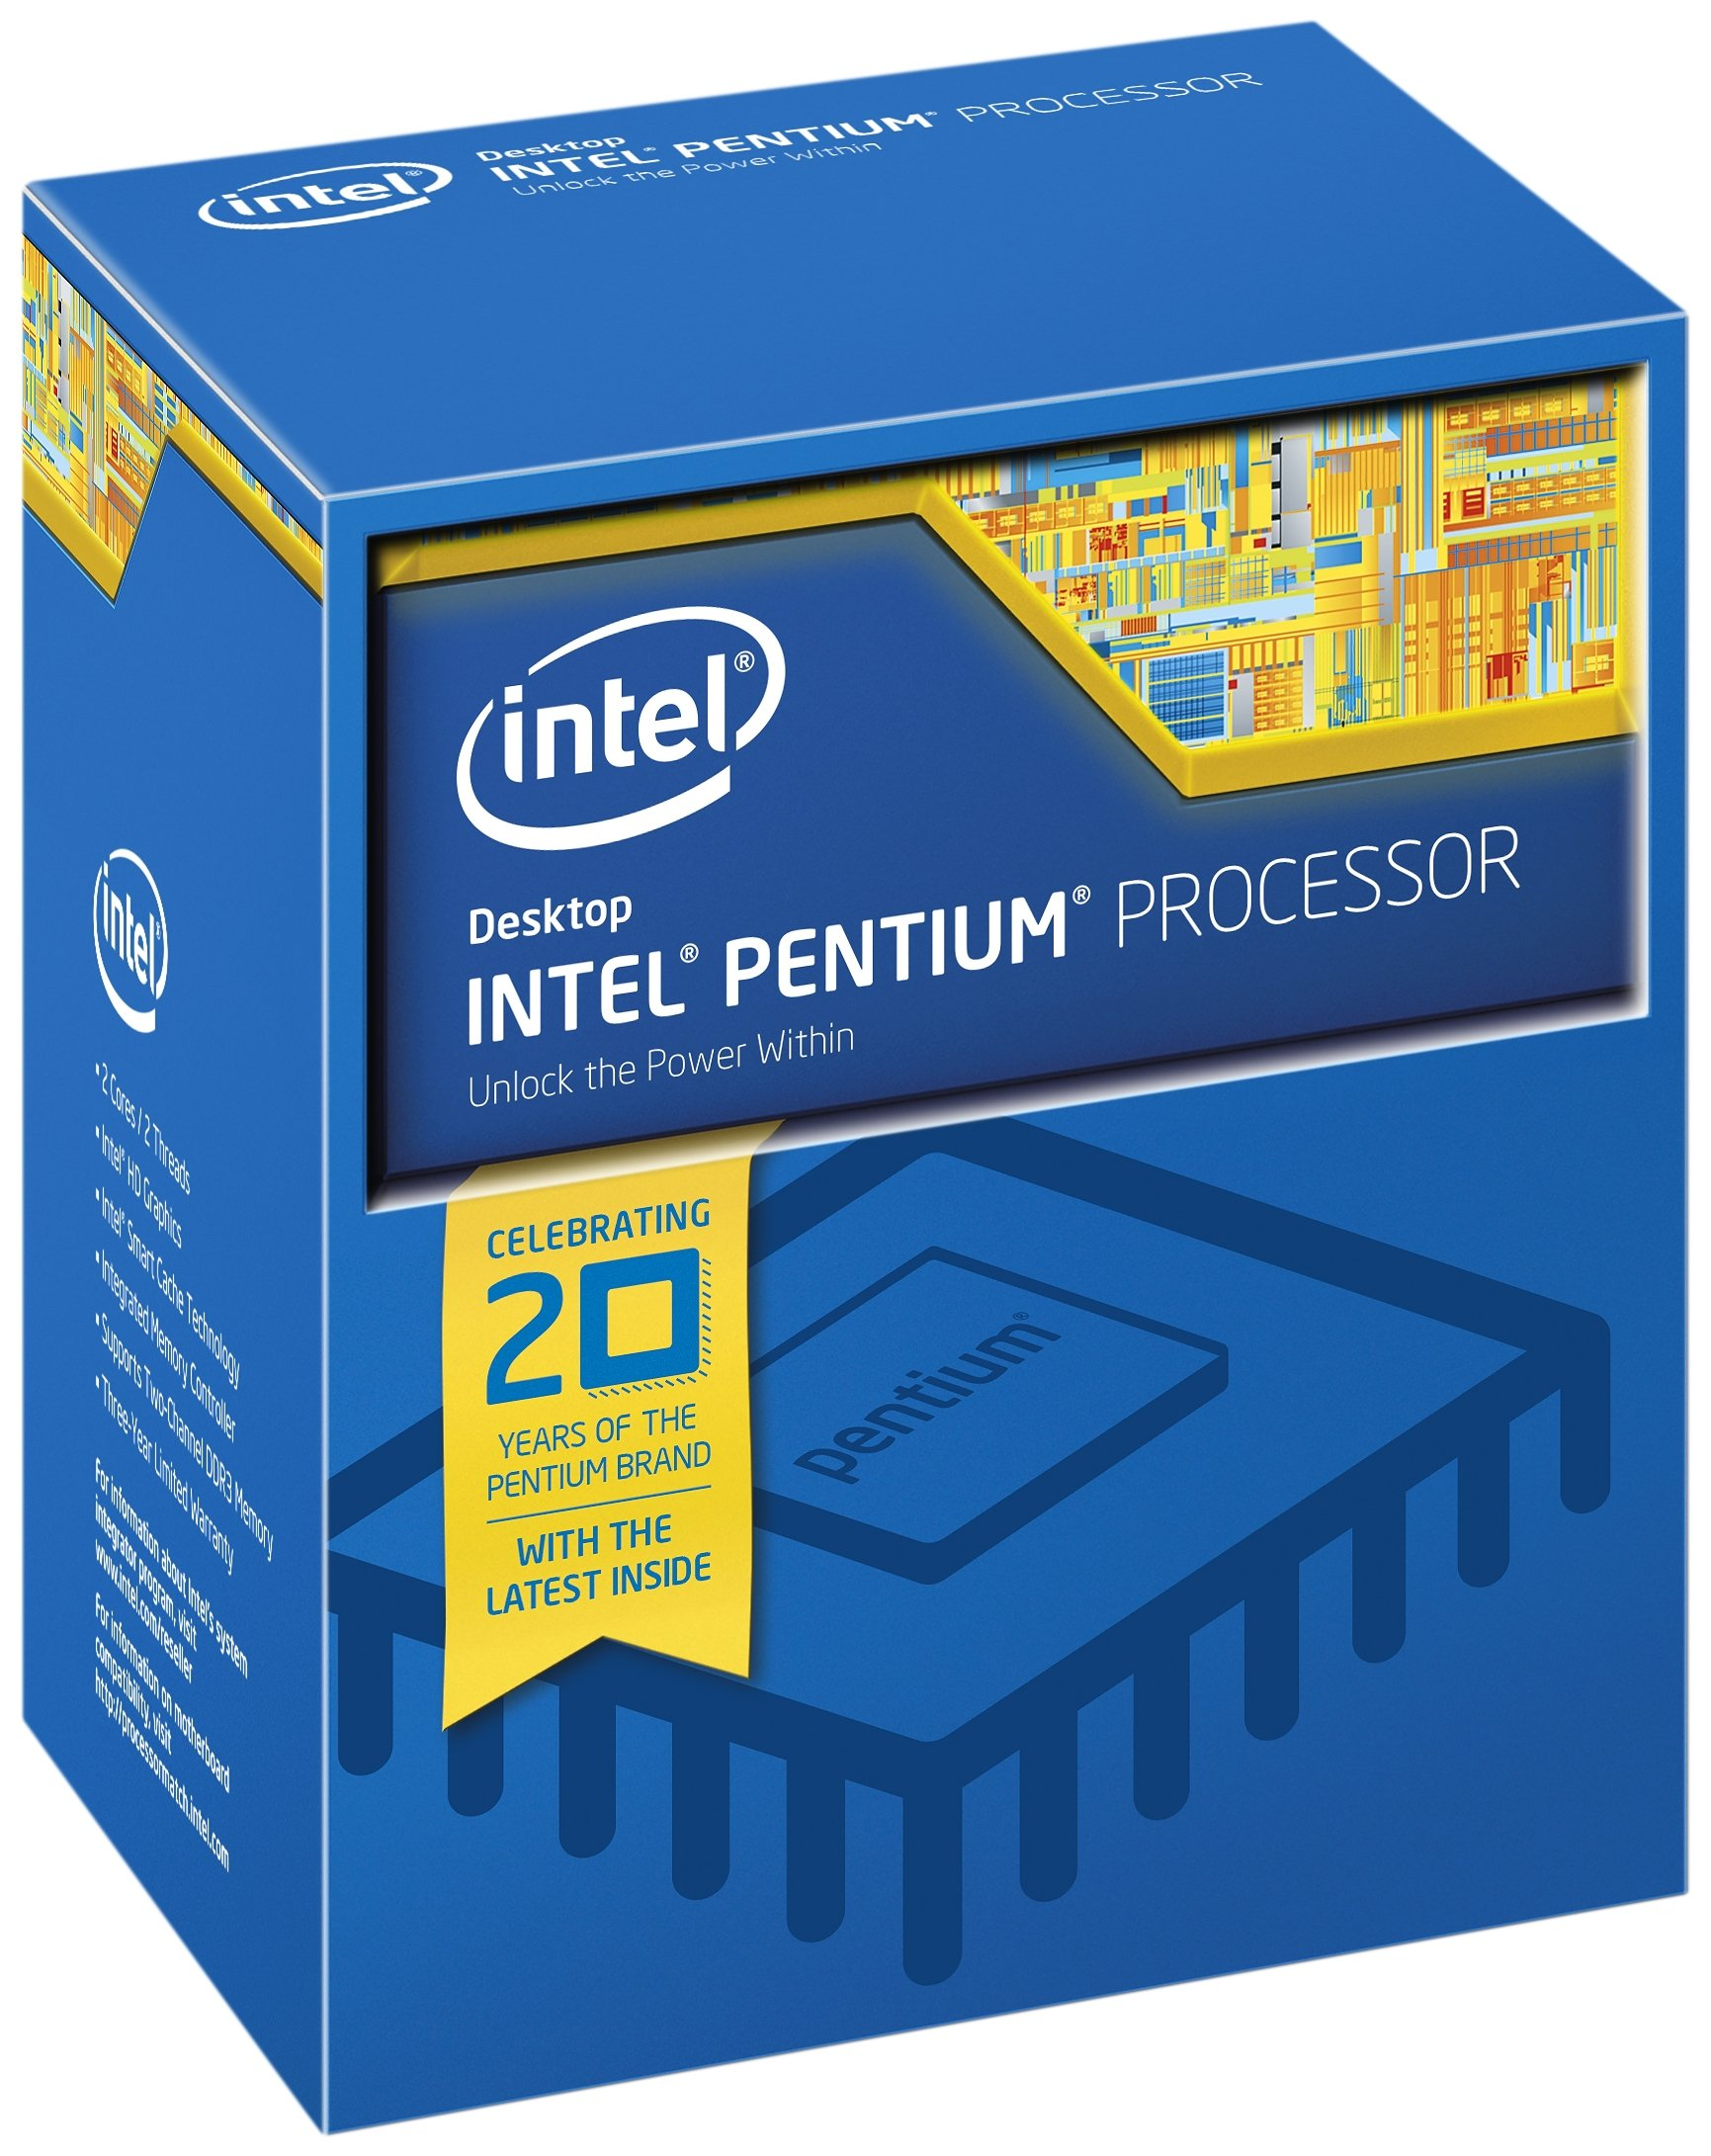 Intel Pentium Processor 3.3 2 BX80646G3260 by Intel